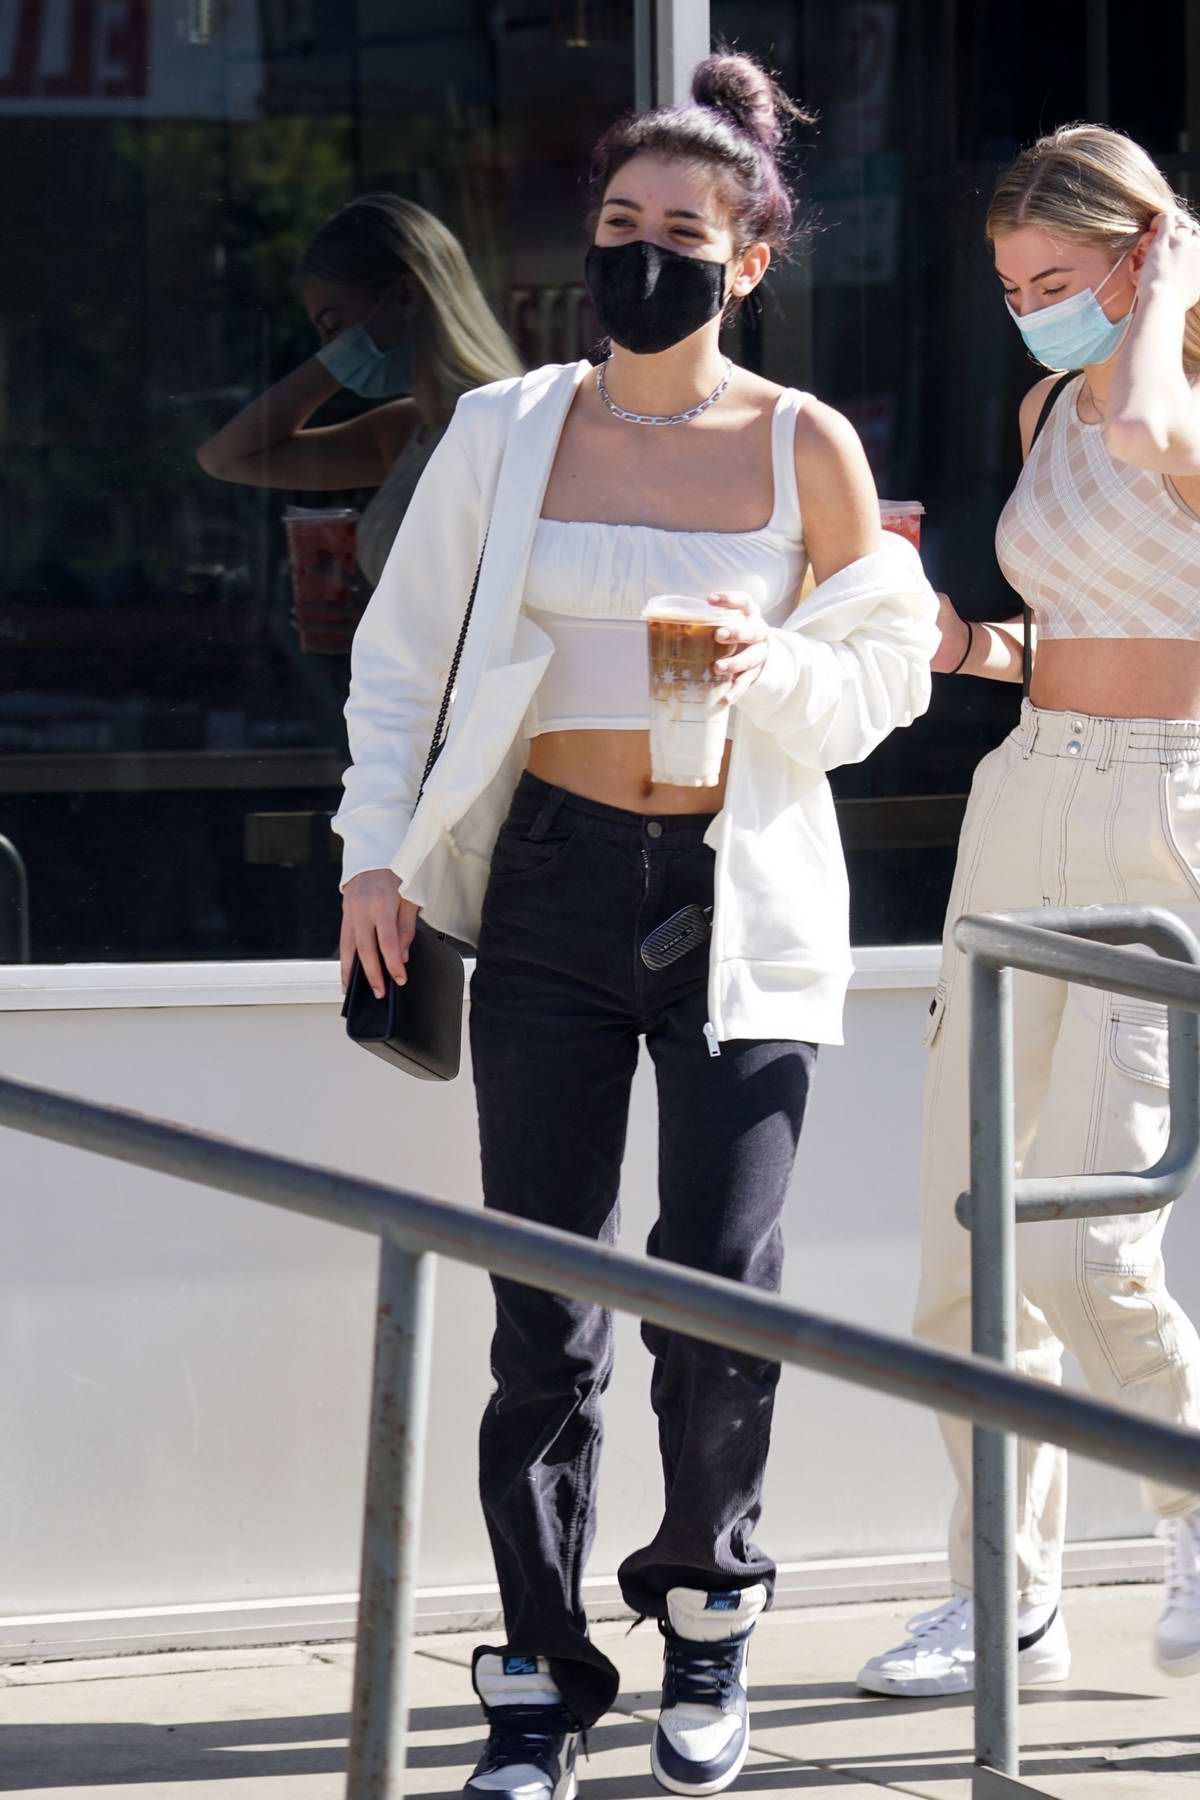 Dixie D'Amelio flashes her midriff while out for coffee with a friend in West Hollywood, California